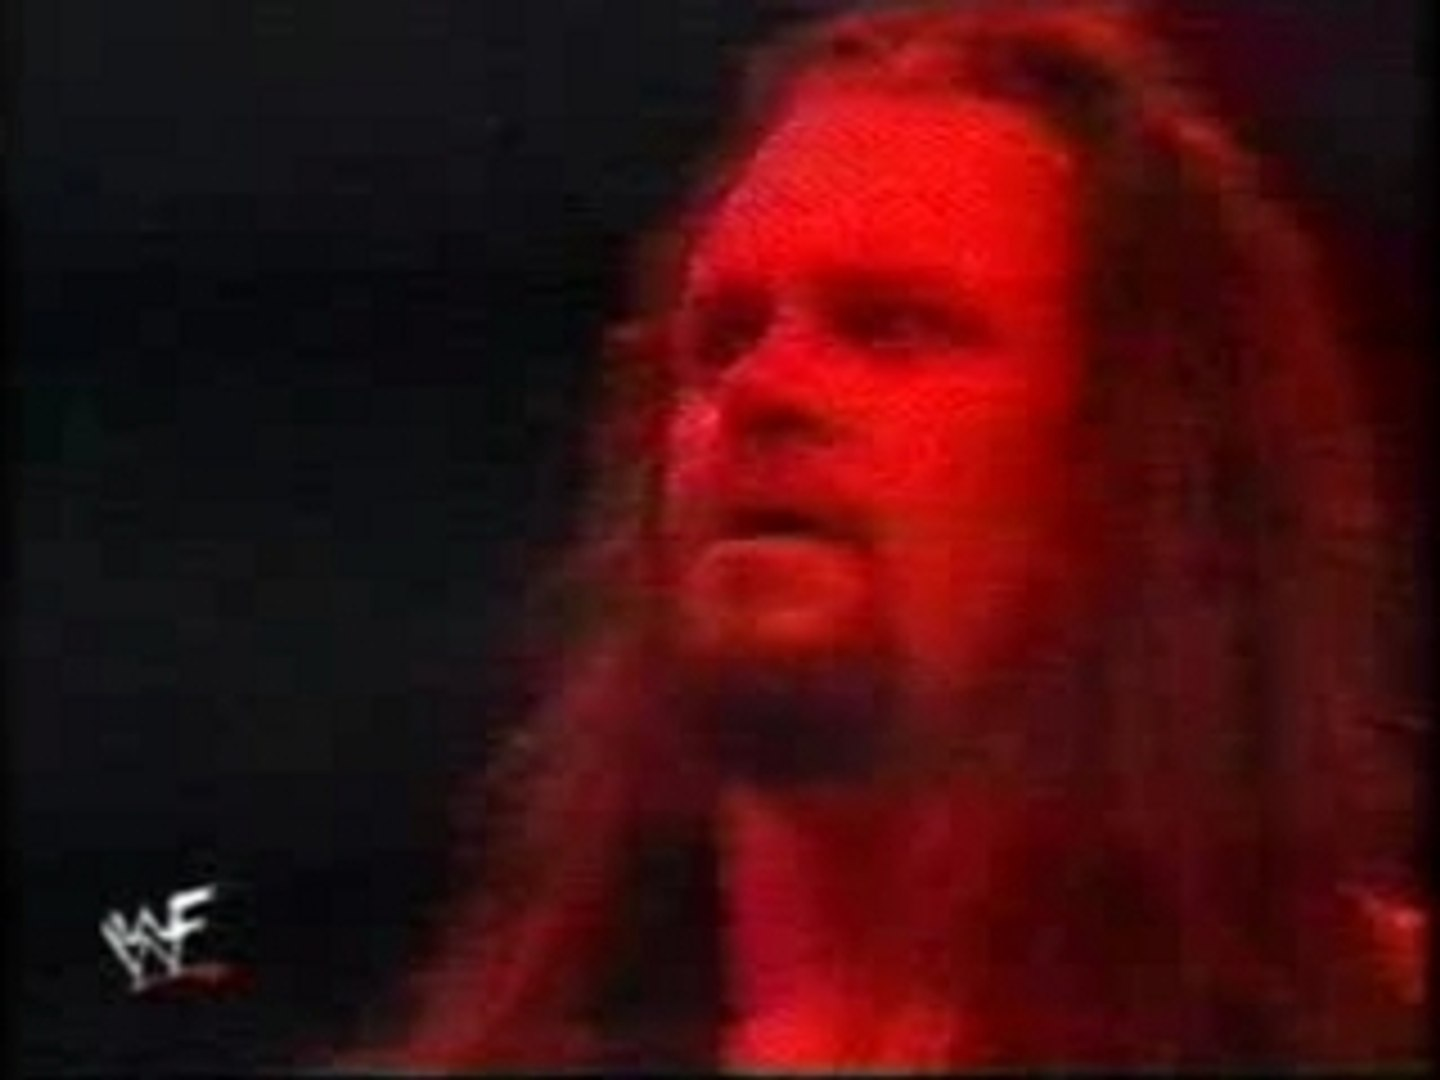 Ten years of Kane 1997-2007 (Undertaker & Kane bond briefly)